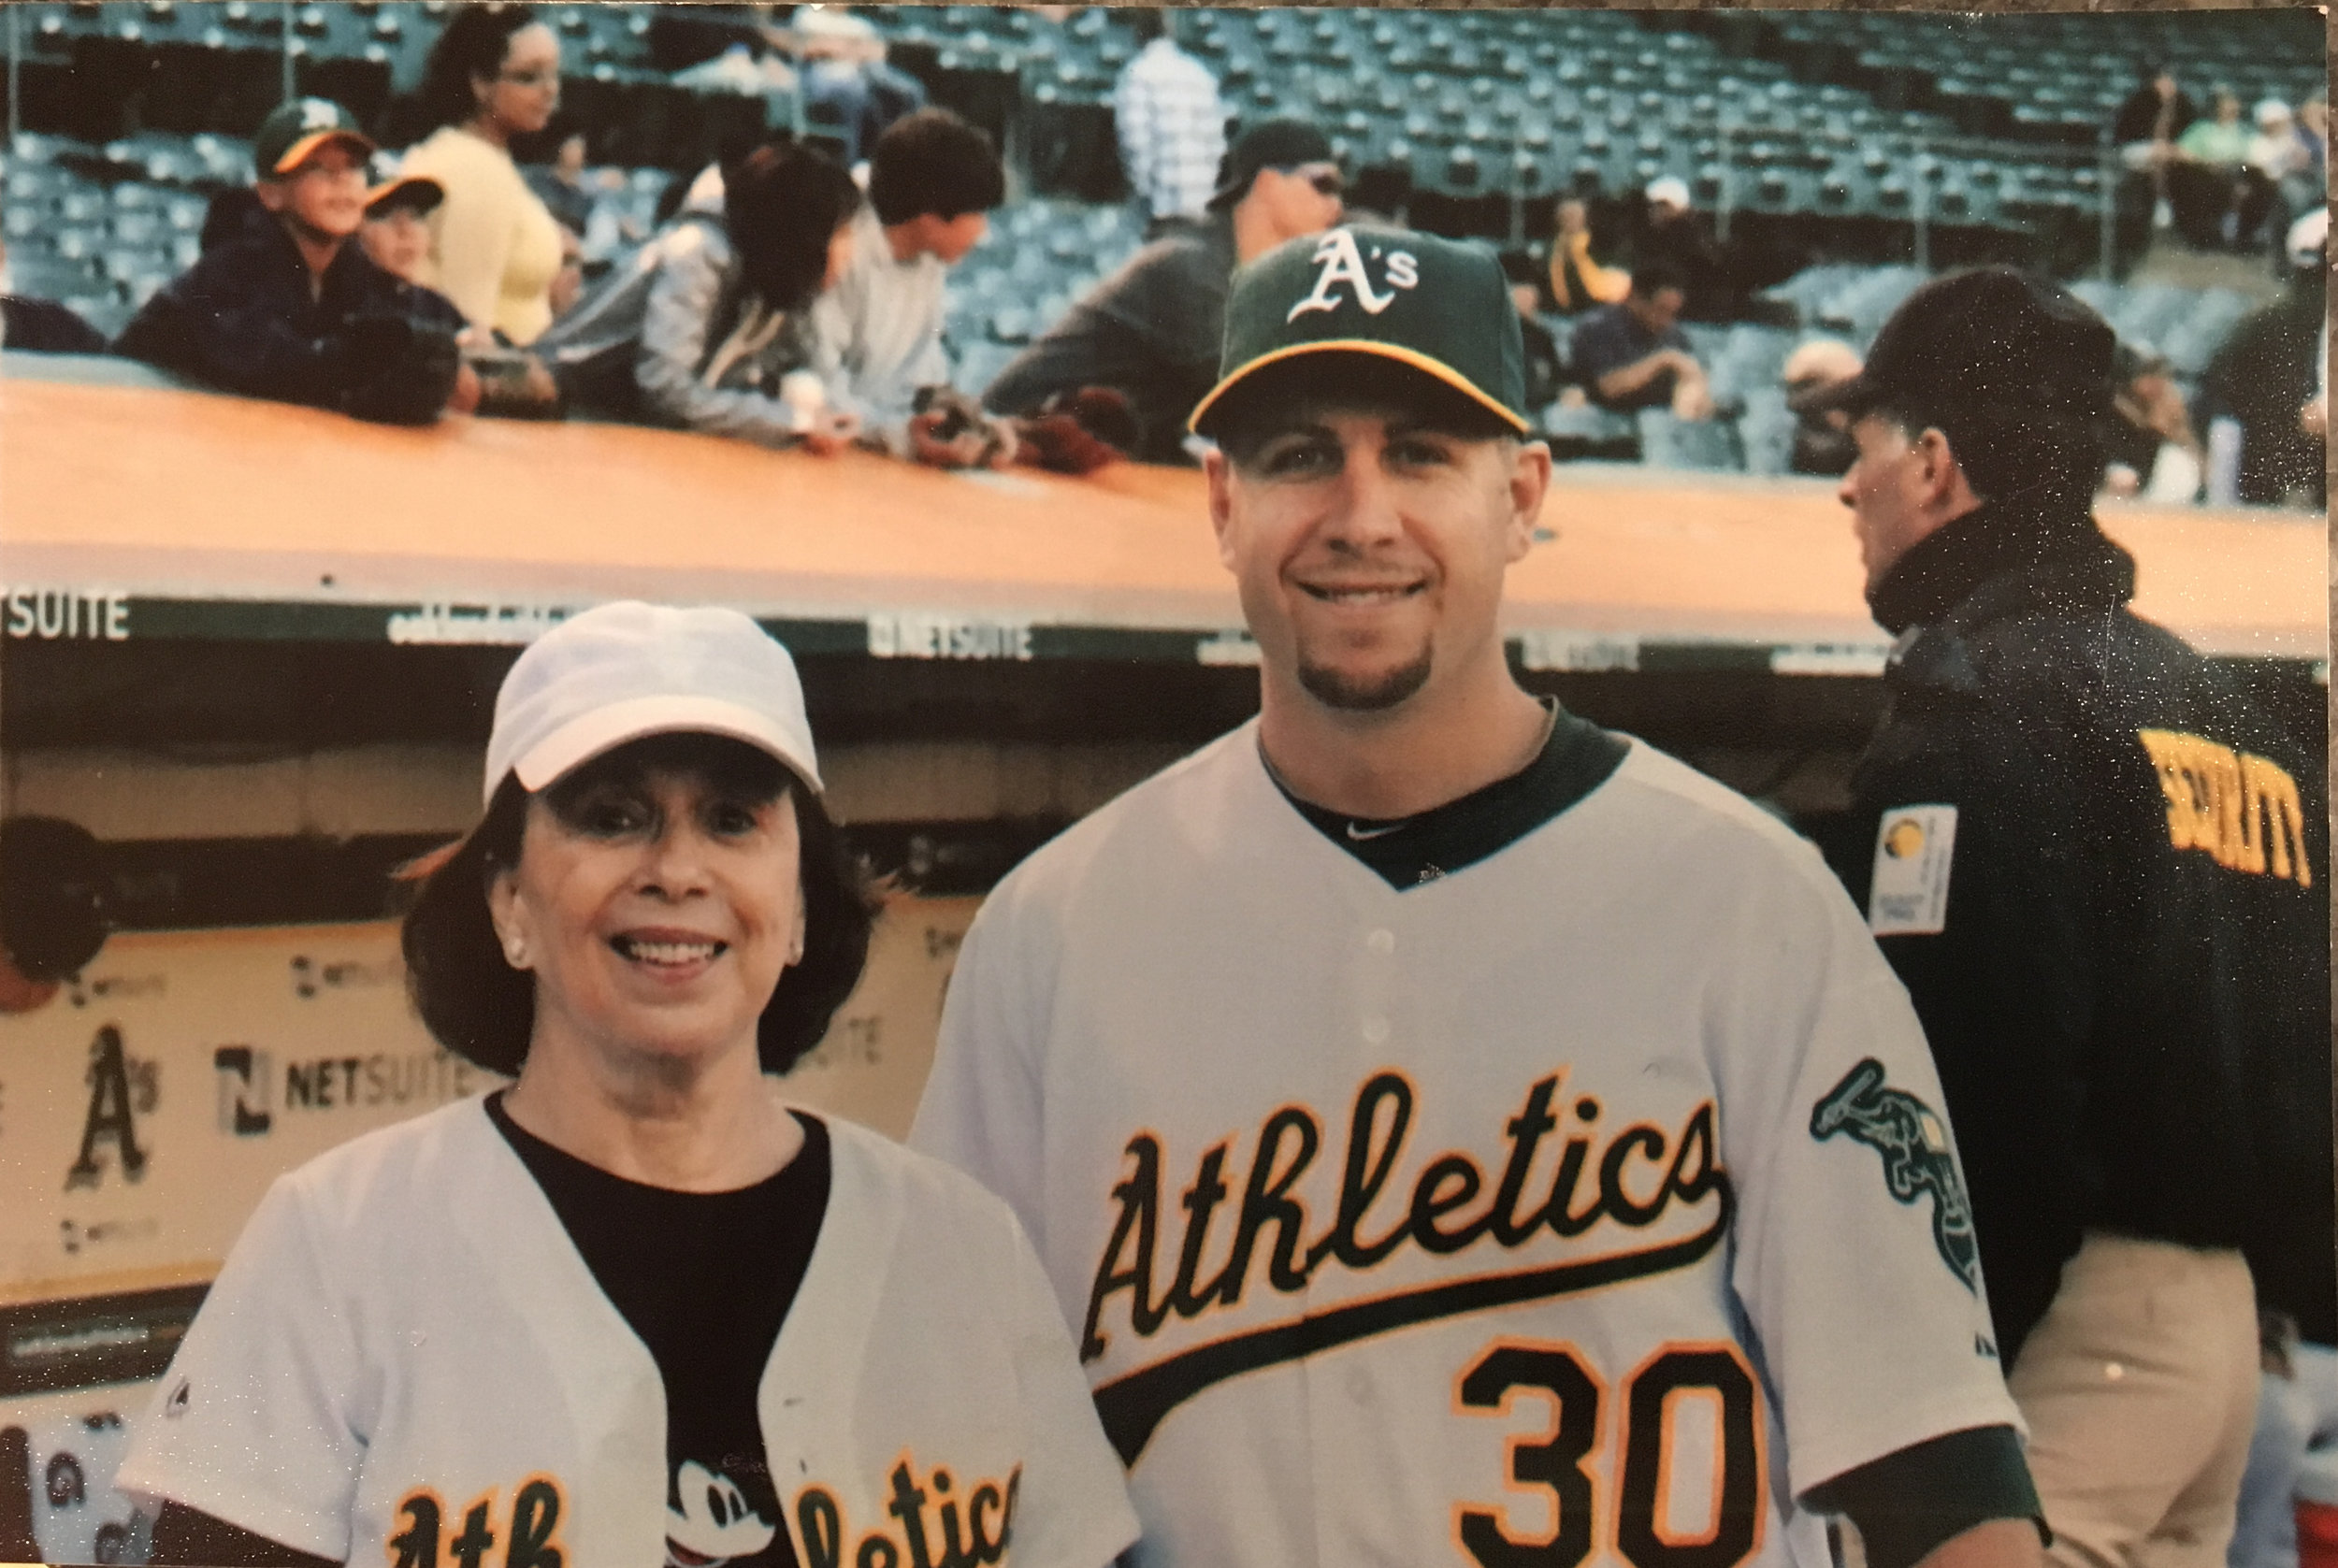 Kathryn throws out first pitch to Oakland A's Steve Tolleson (2010)